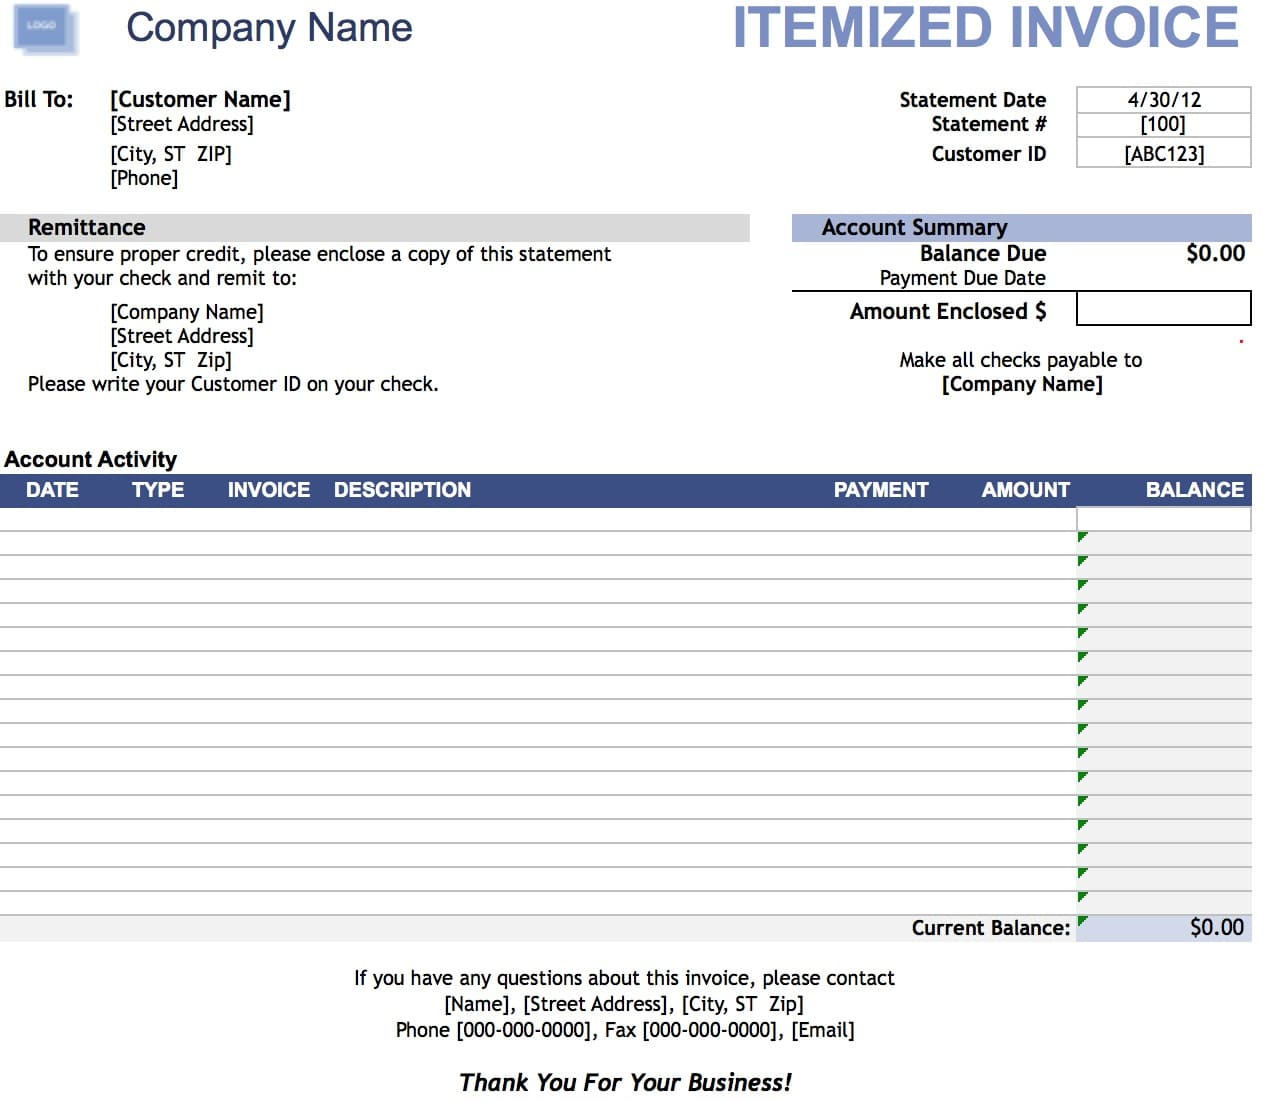 Free Itemized Invoice Template Excel PDF Word Doc - Free microsoft word invoice template for service business